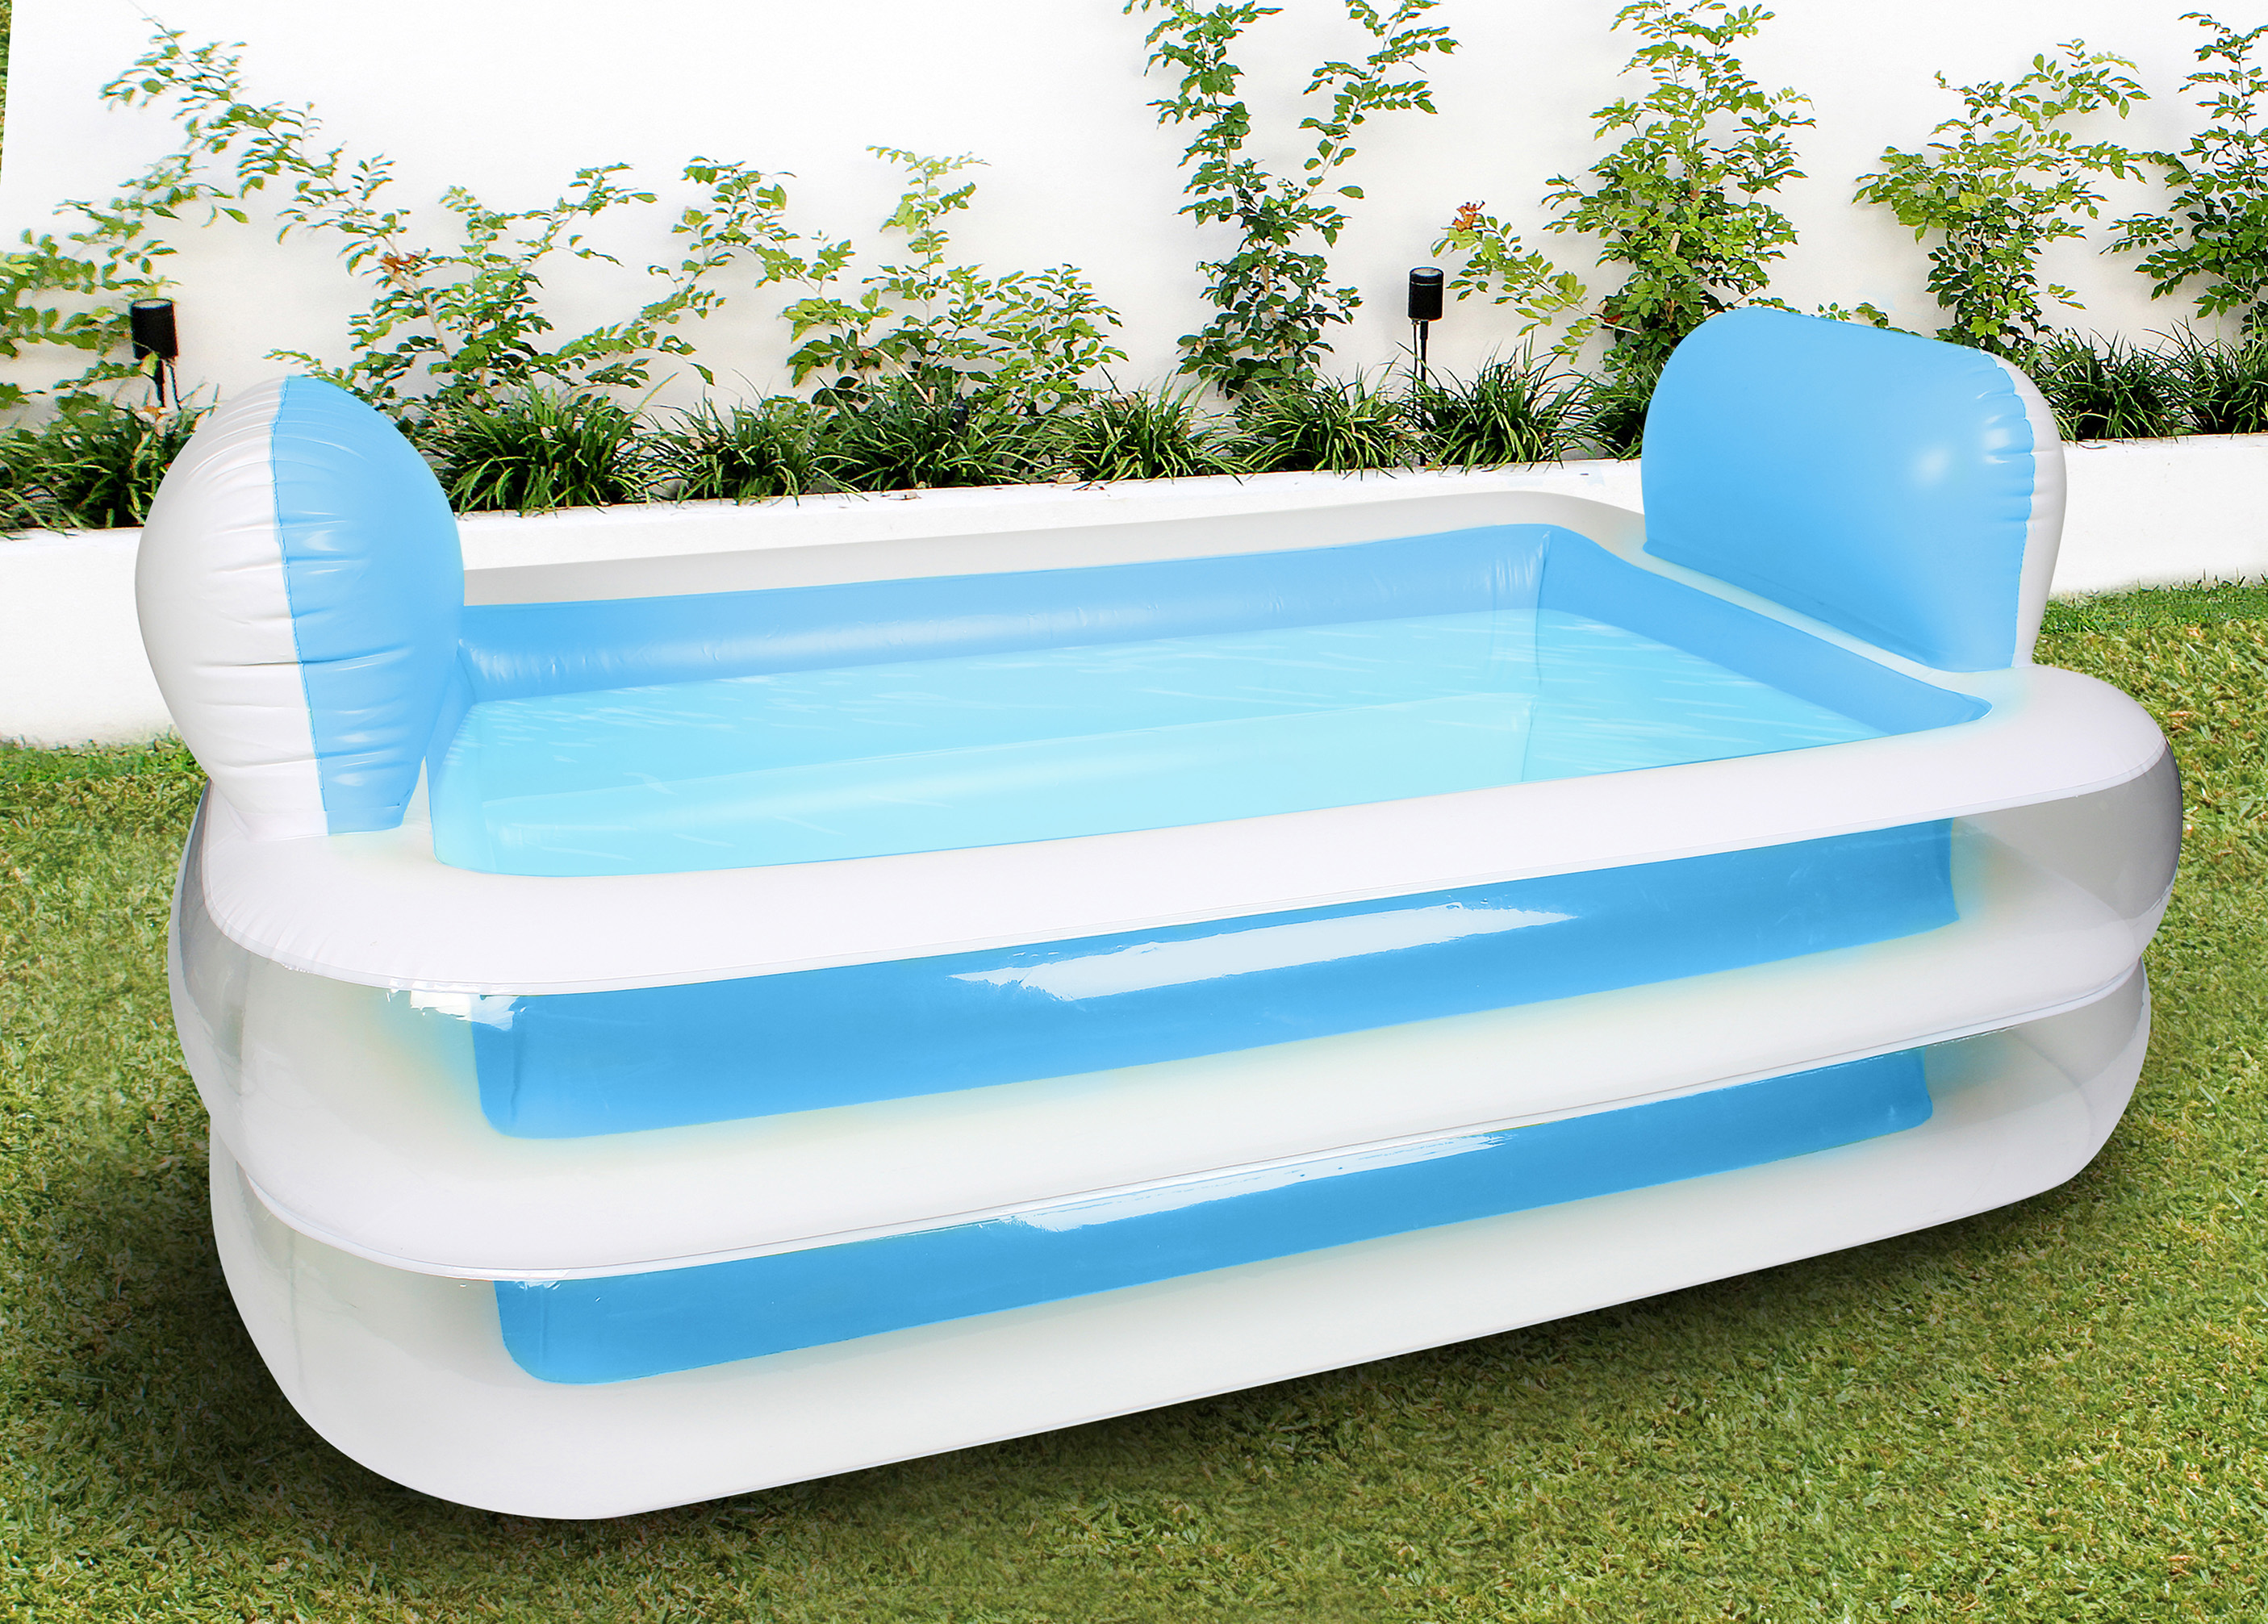 Inflatable family swimming pool rectangular pillows for Garden pool facebook